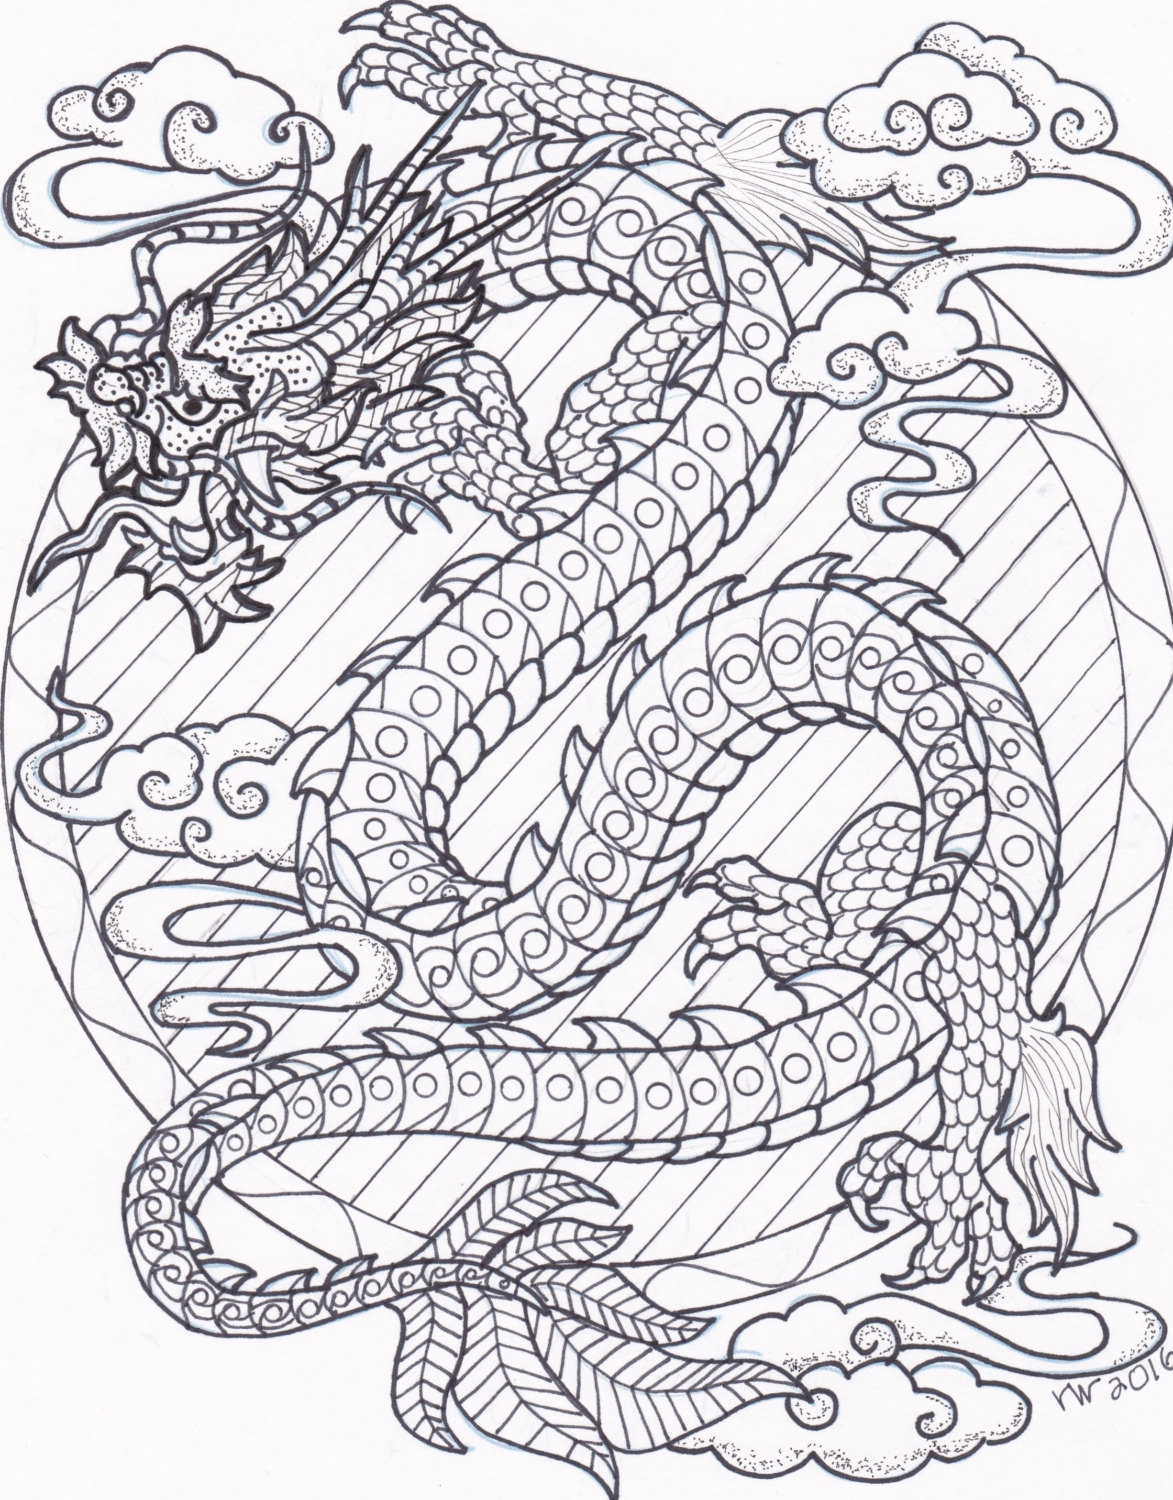 1173x1500 Awesome Adult Coloring Pages Printable Zentangle Design